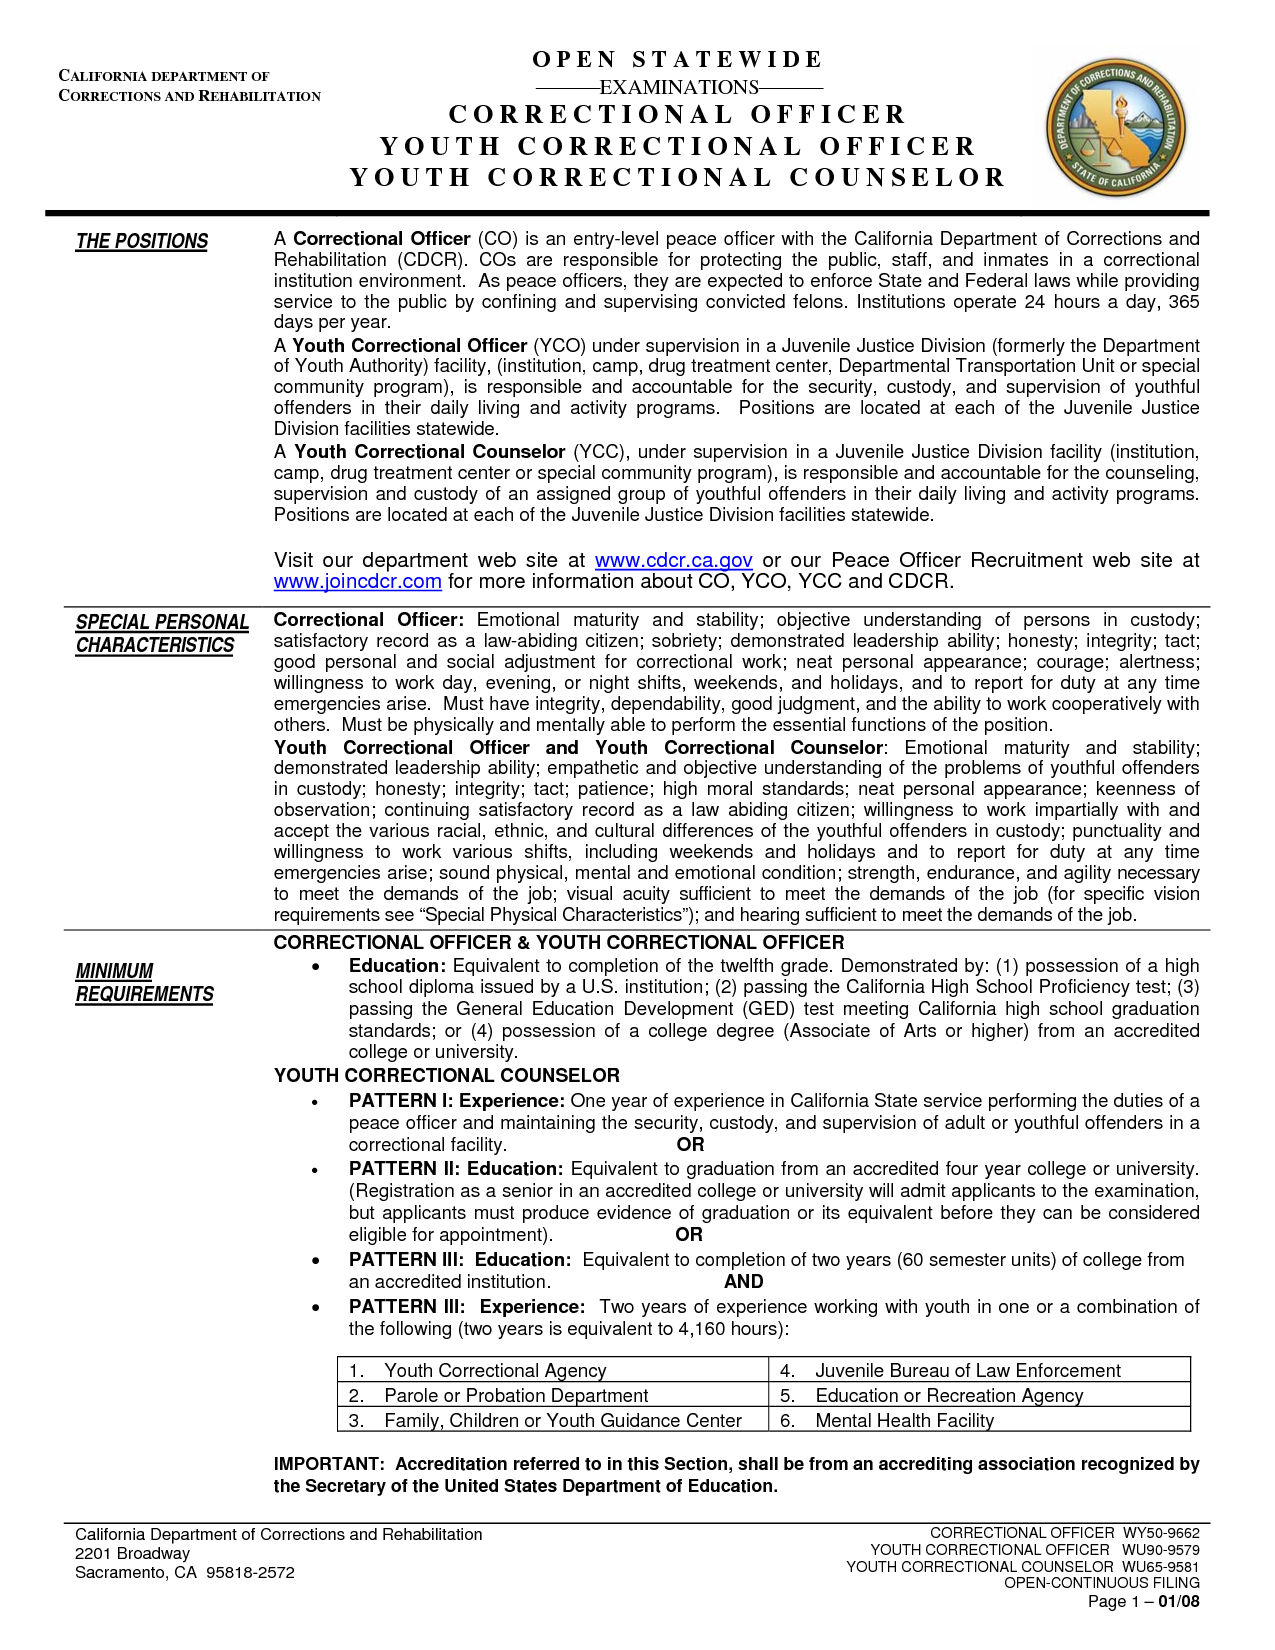 Juvenile Detention Officer Resume Example  HttpWww